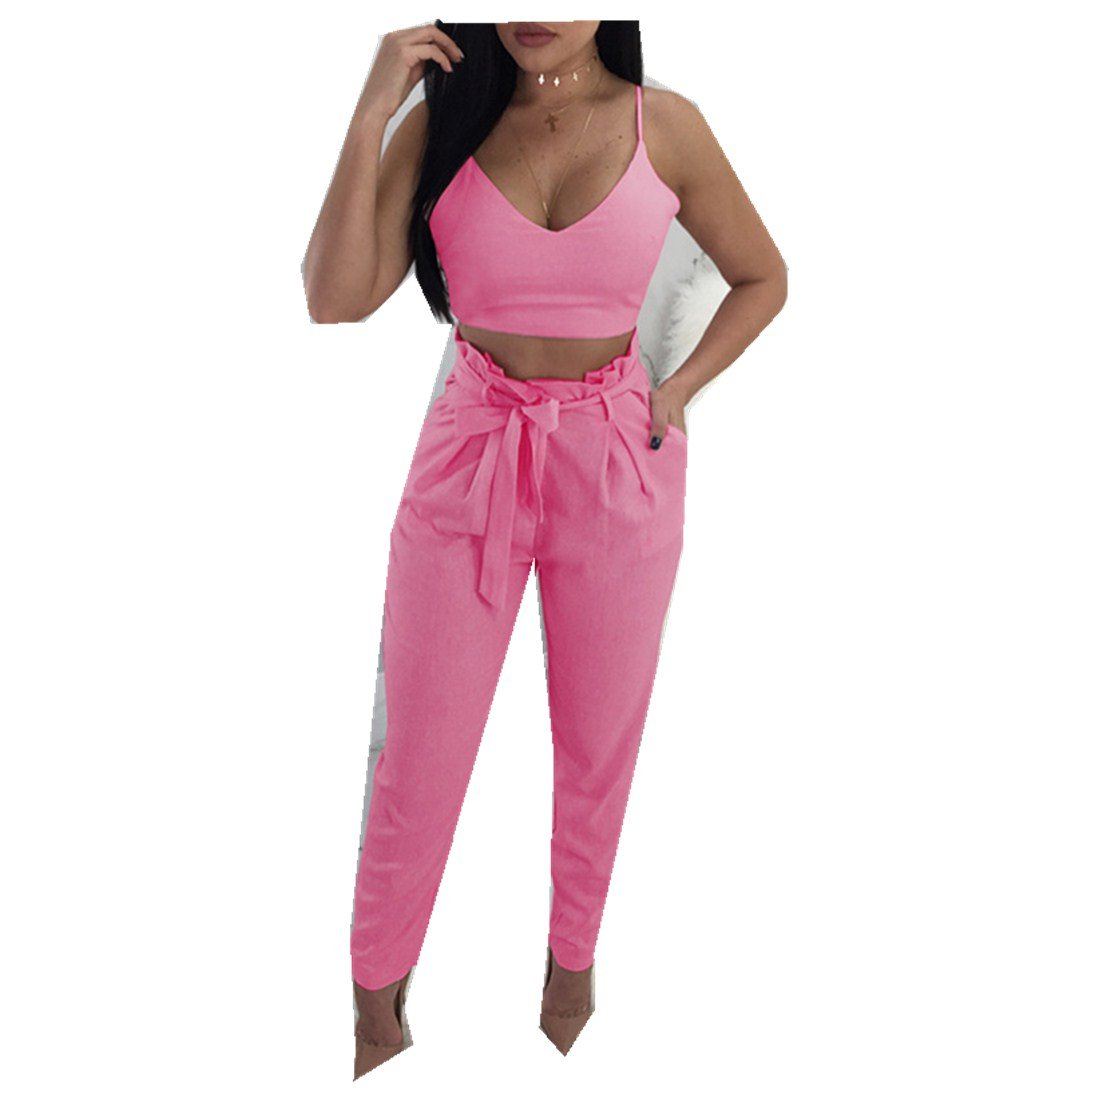 Summer Women's New Camisole Feet Pants Two-Piece Clothing Sets